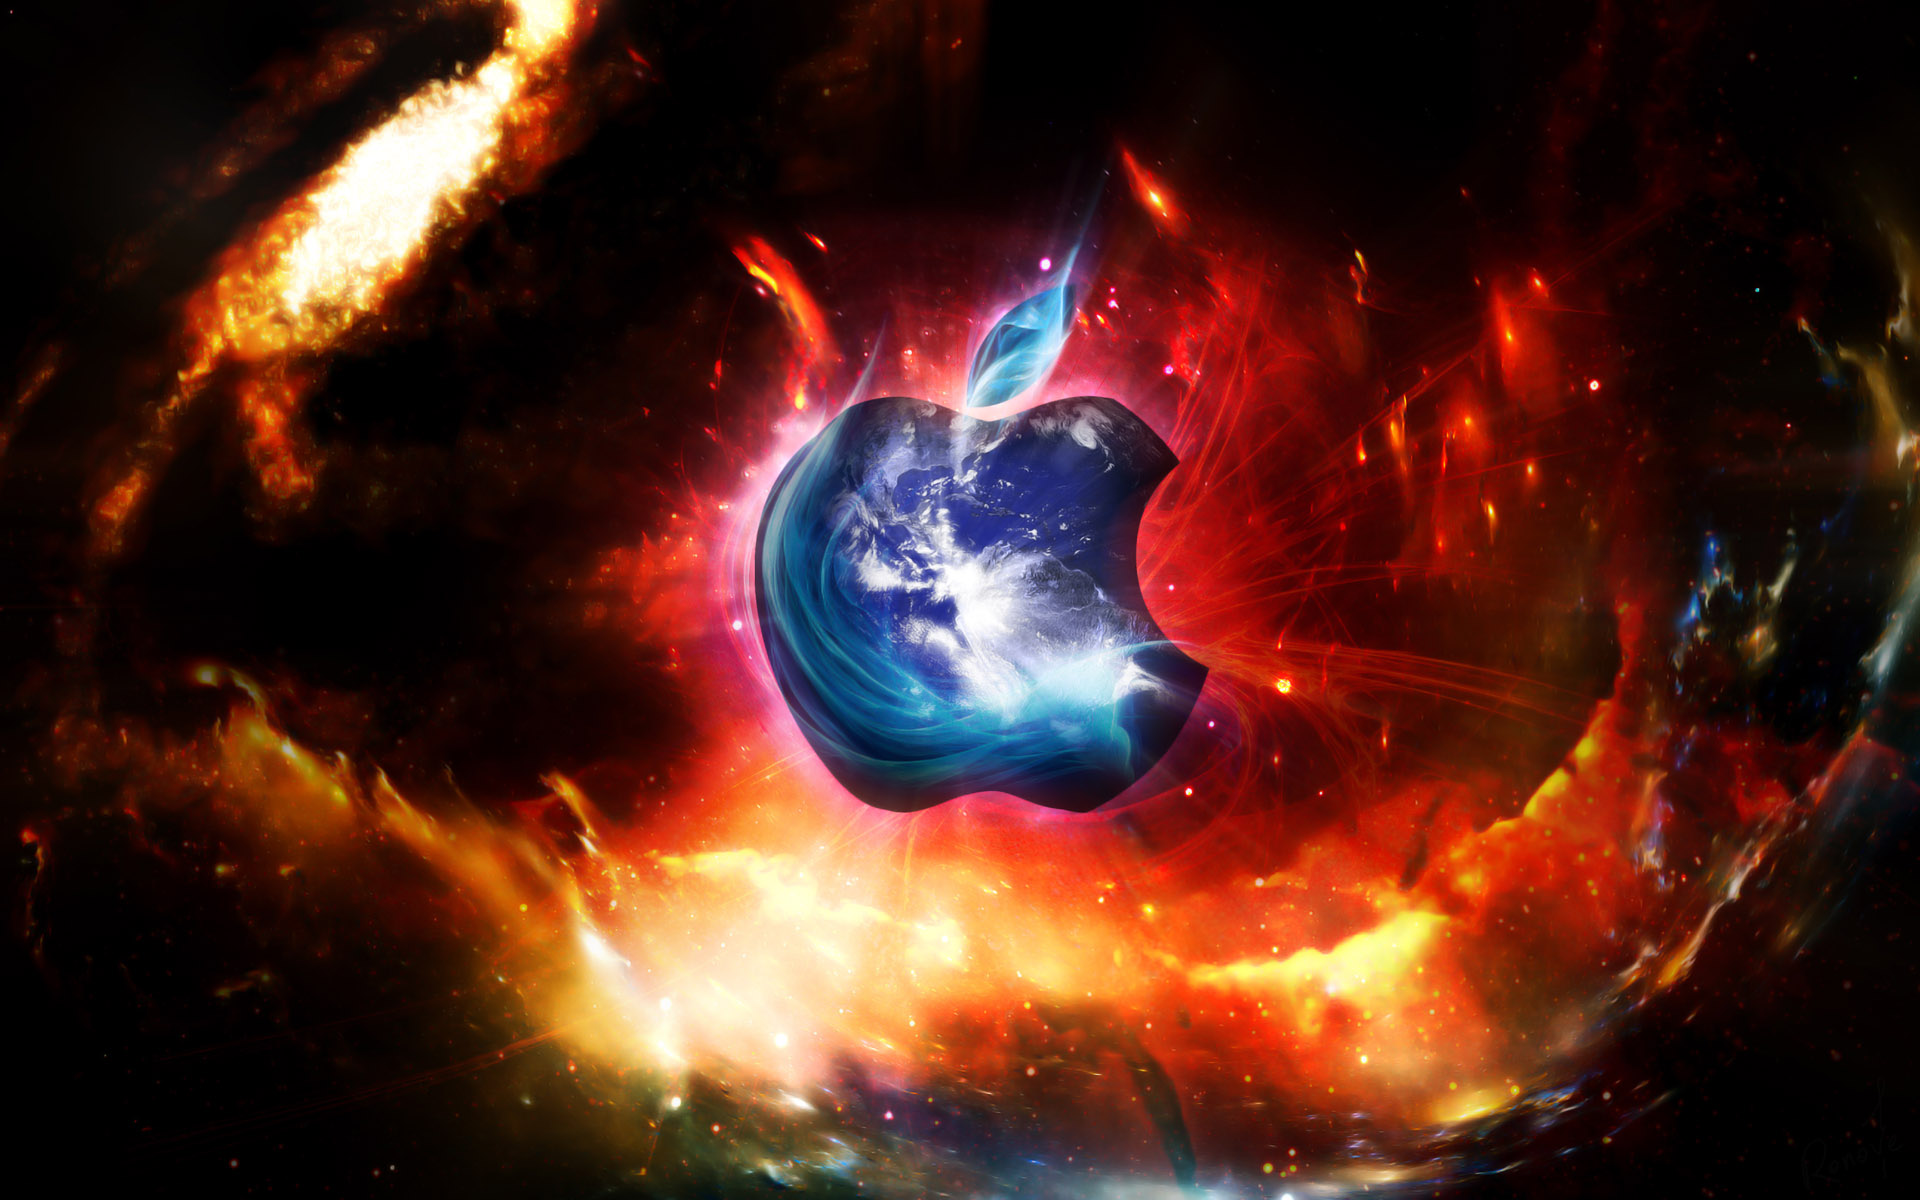 cool mac wallpapers,nature,astronomical object,outer space,space,nebula